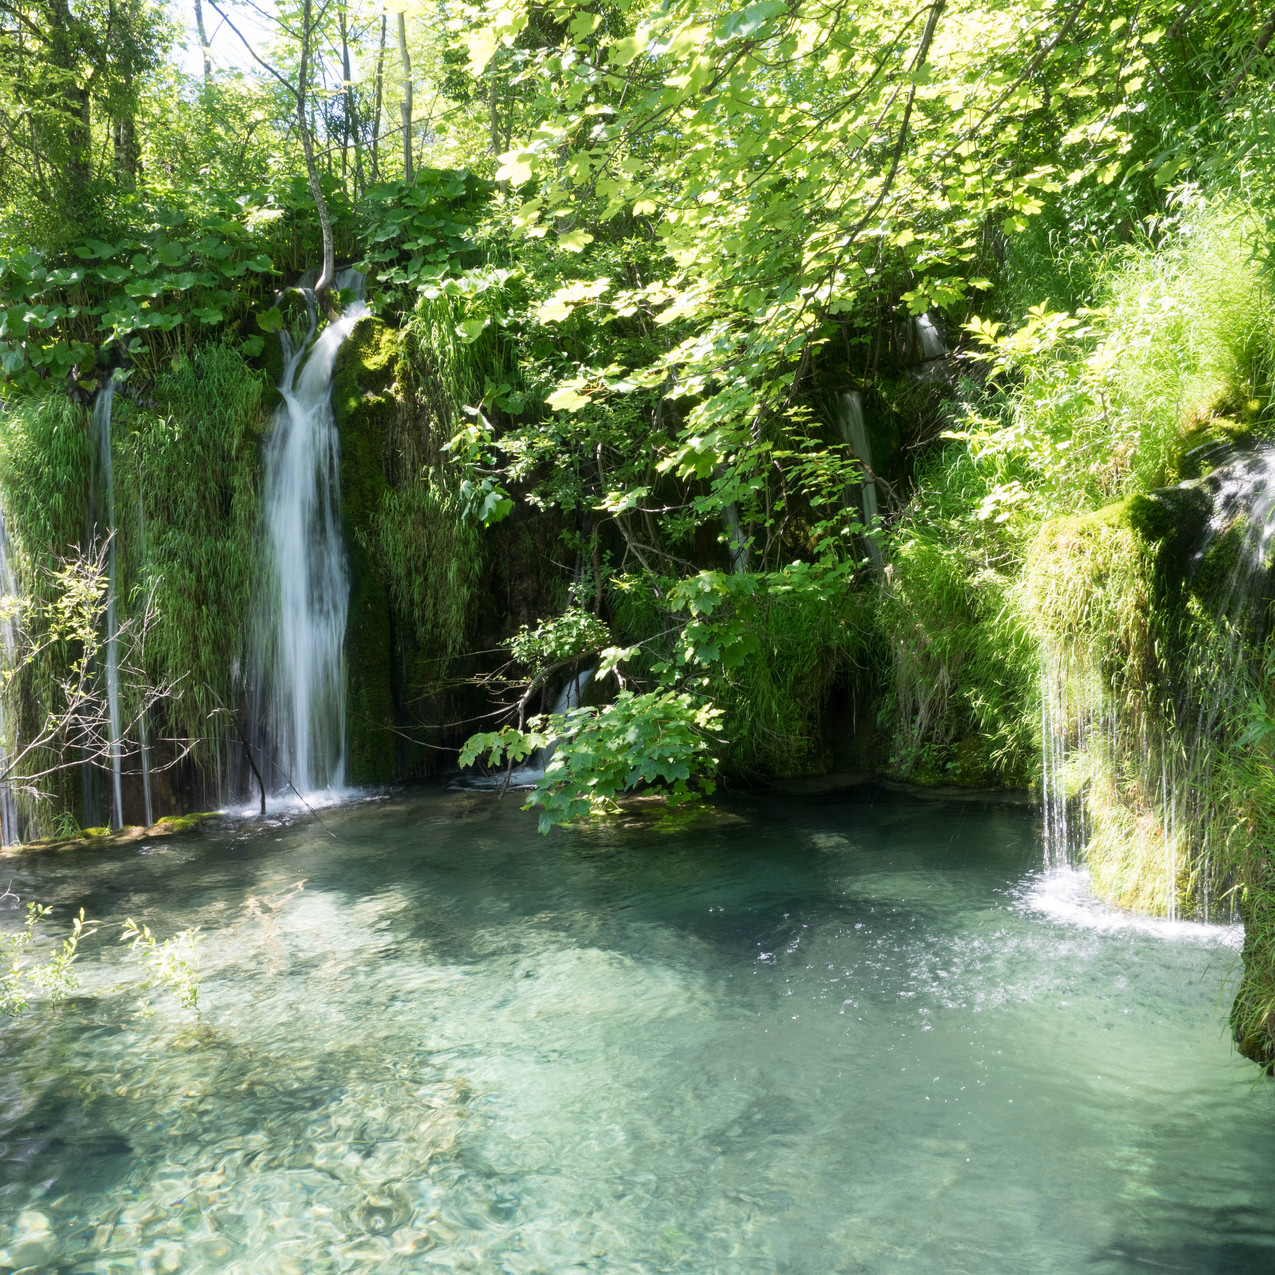 Pool at Plitvice Lakes